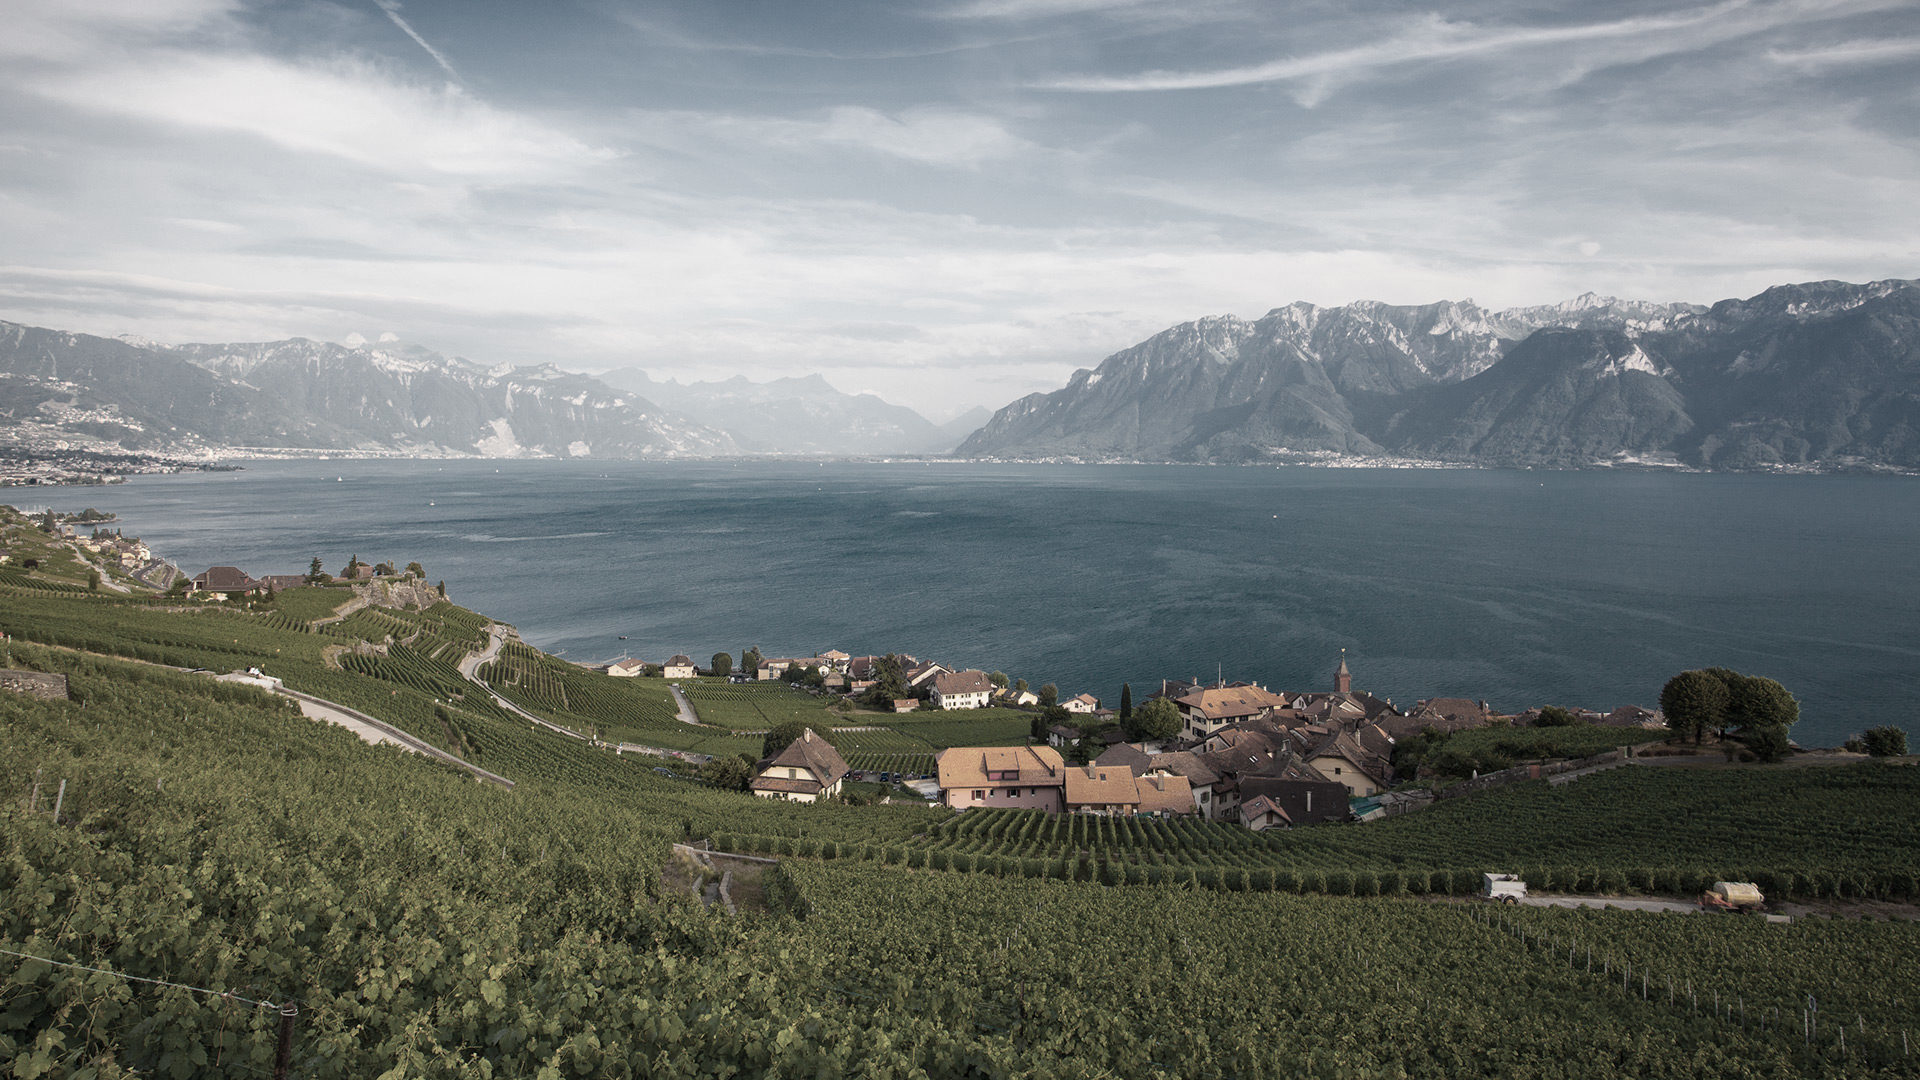 Swiss craftmanship view lake geneva leman alps beatiful scenery lac alpes vineyard vignes lavaux